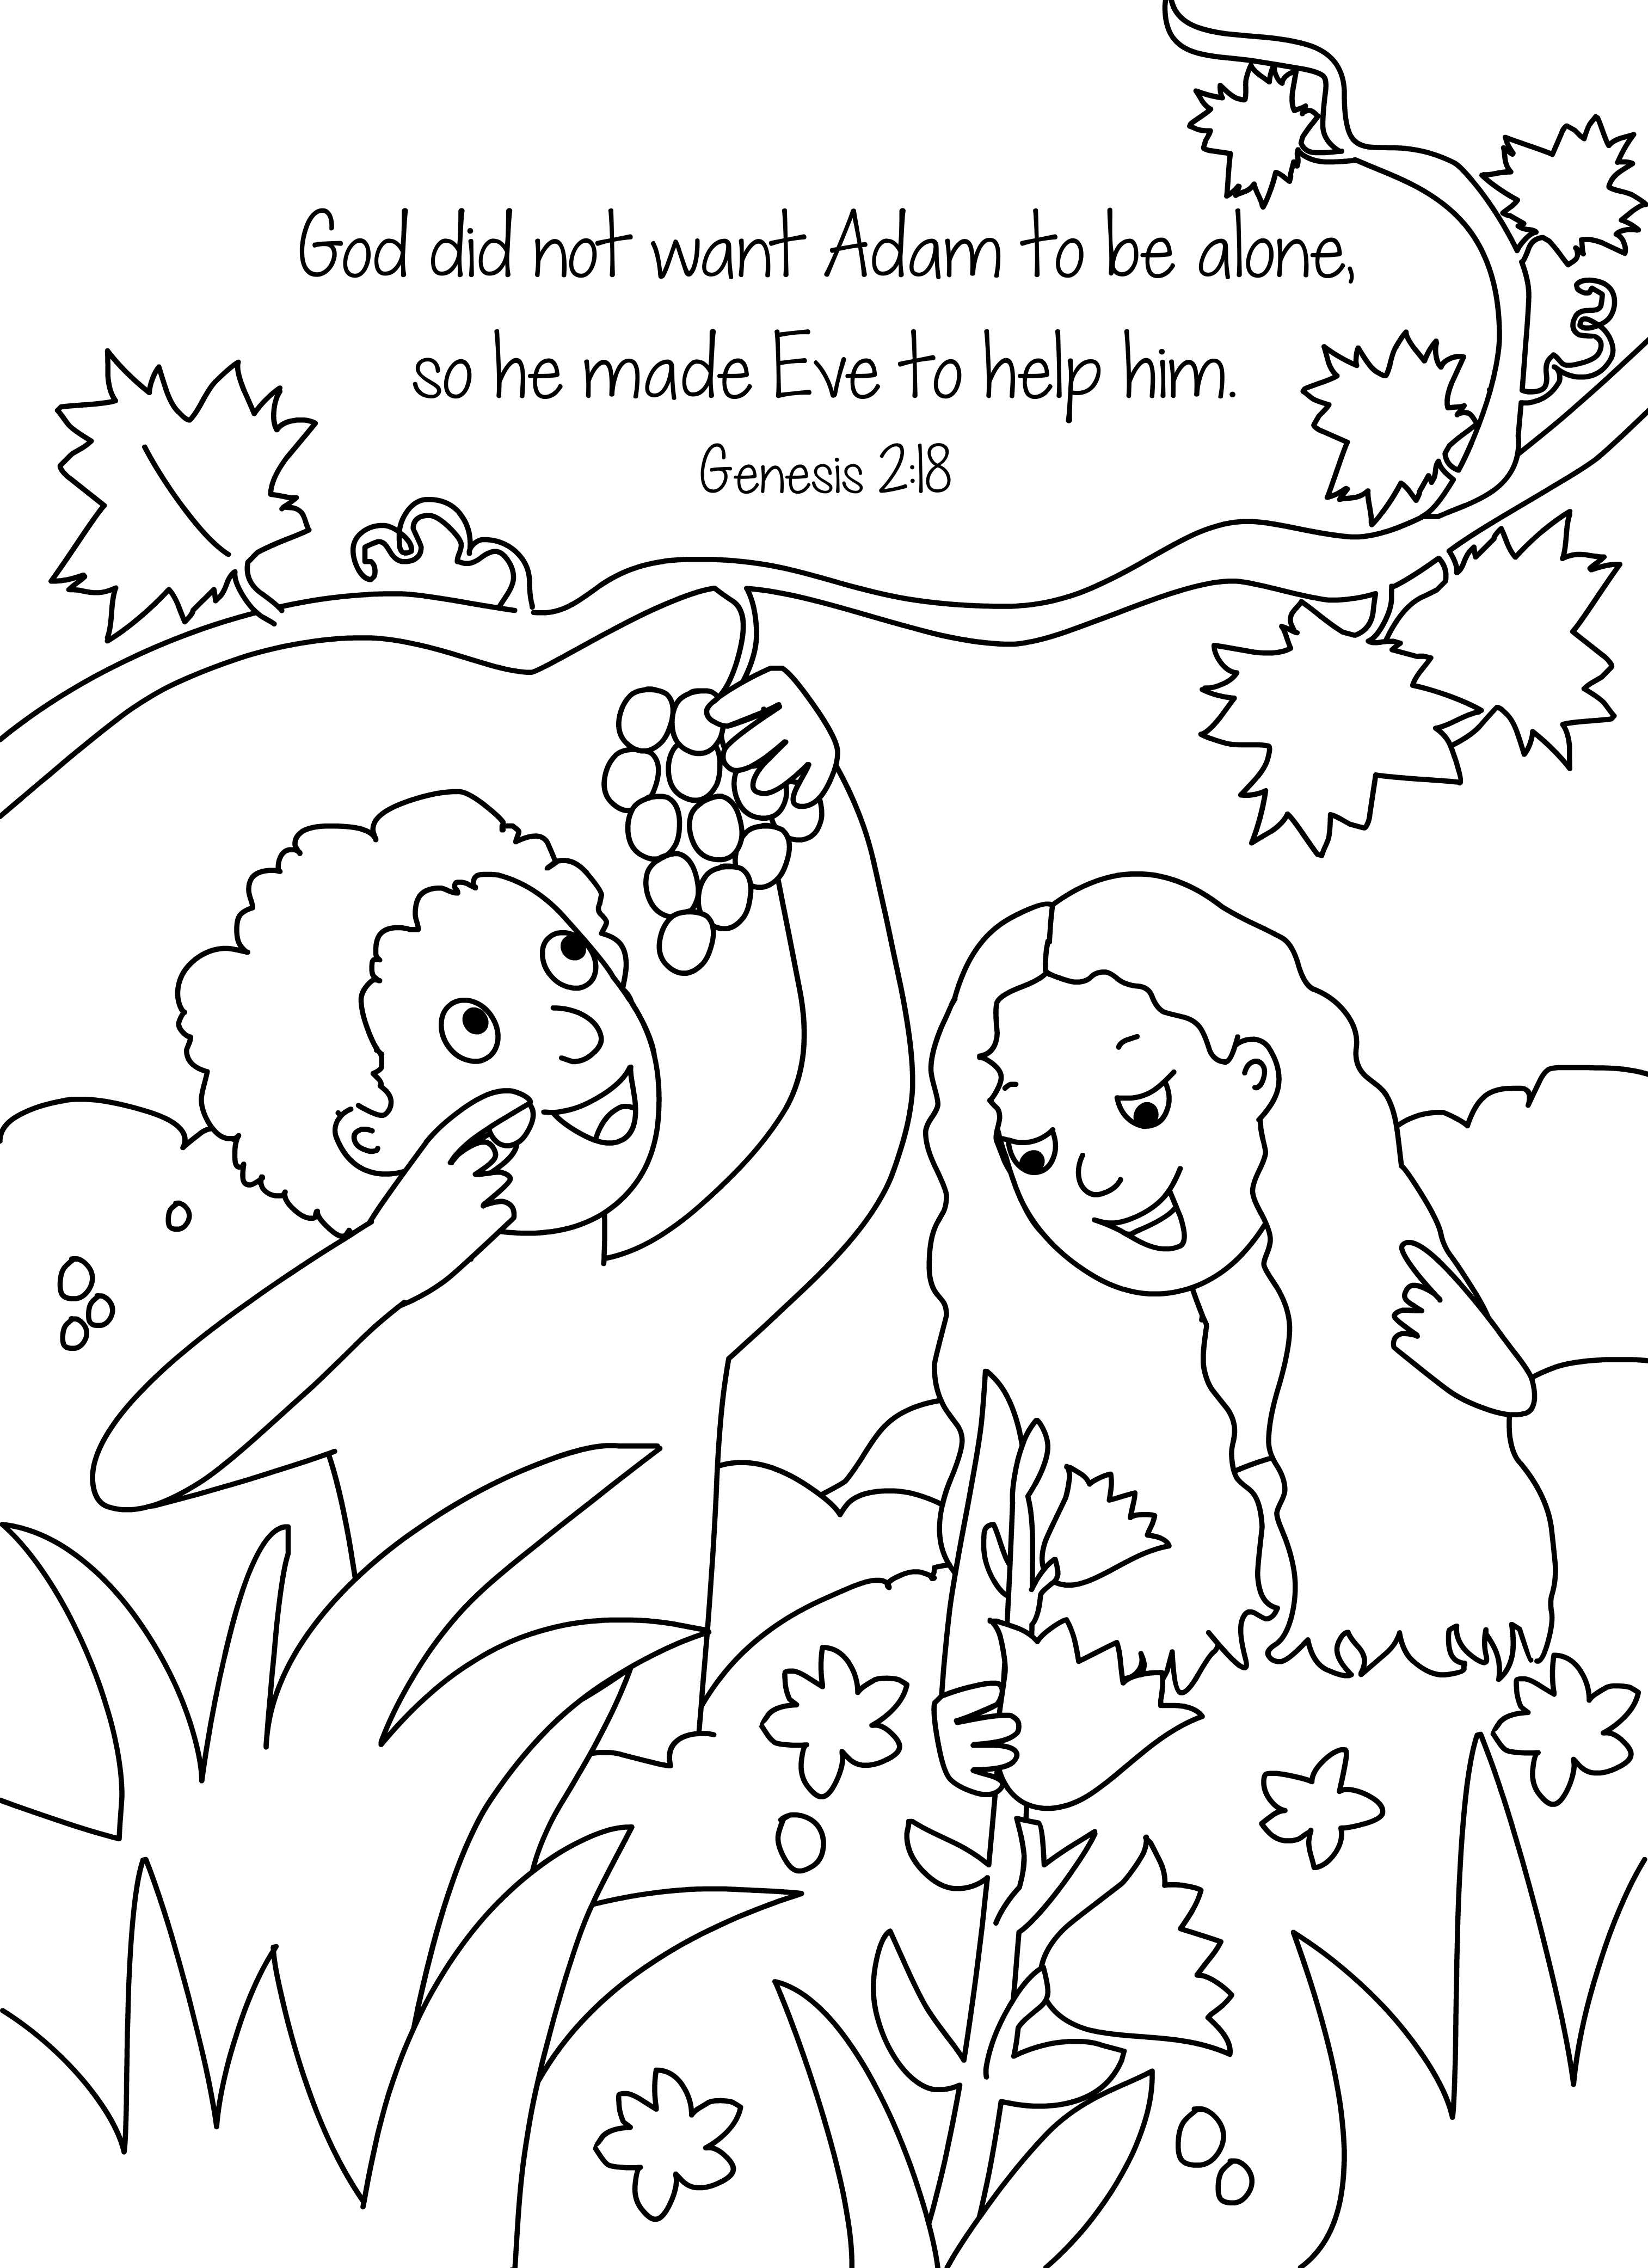 adam coloring page god made adam coloring page sketch coloring page adam coloring page